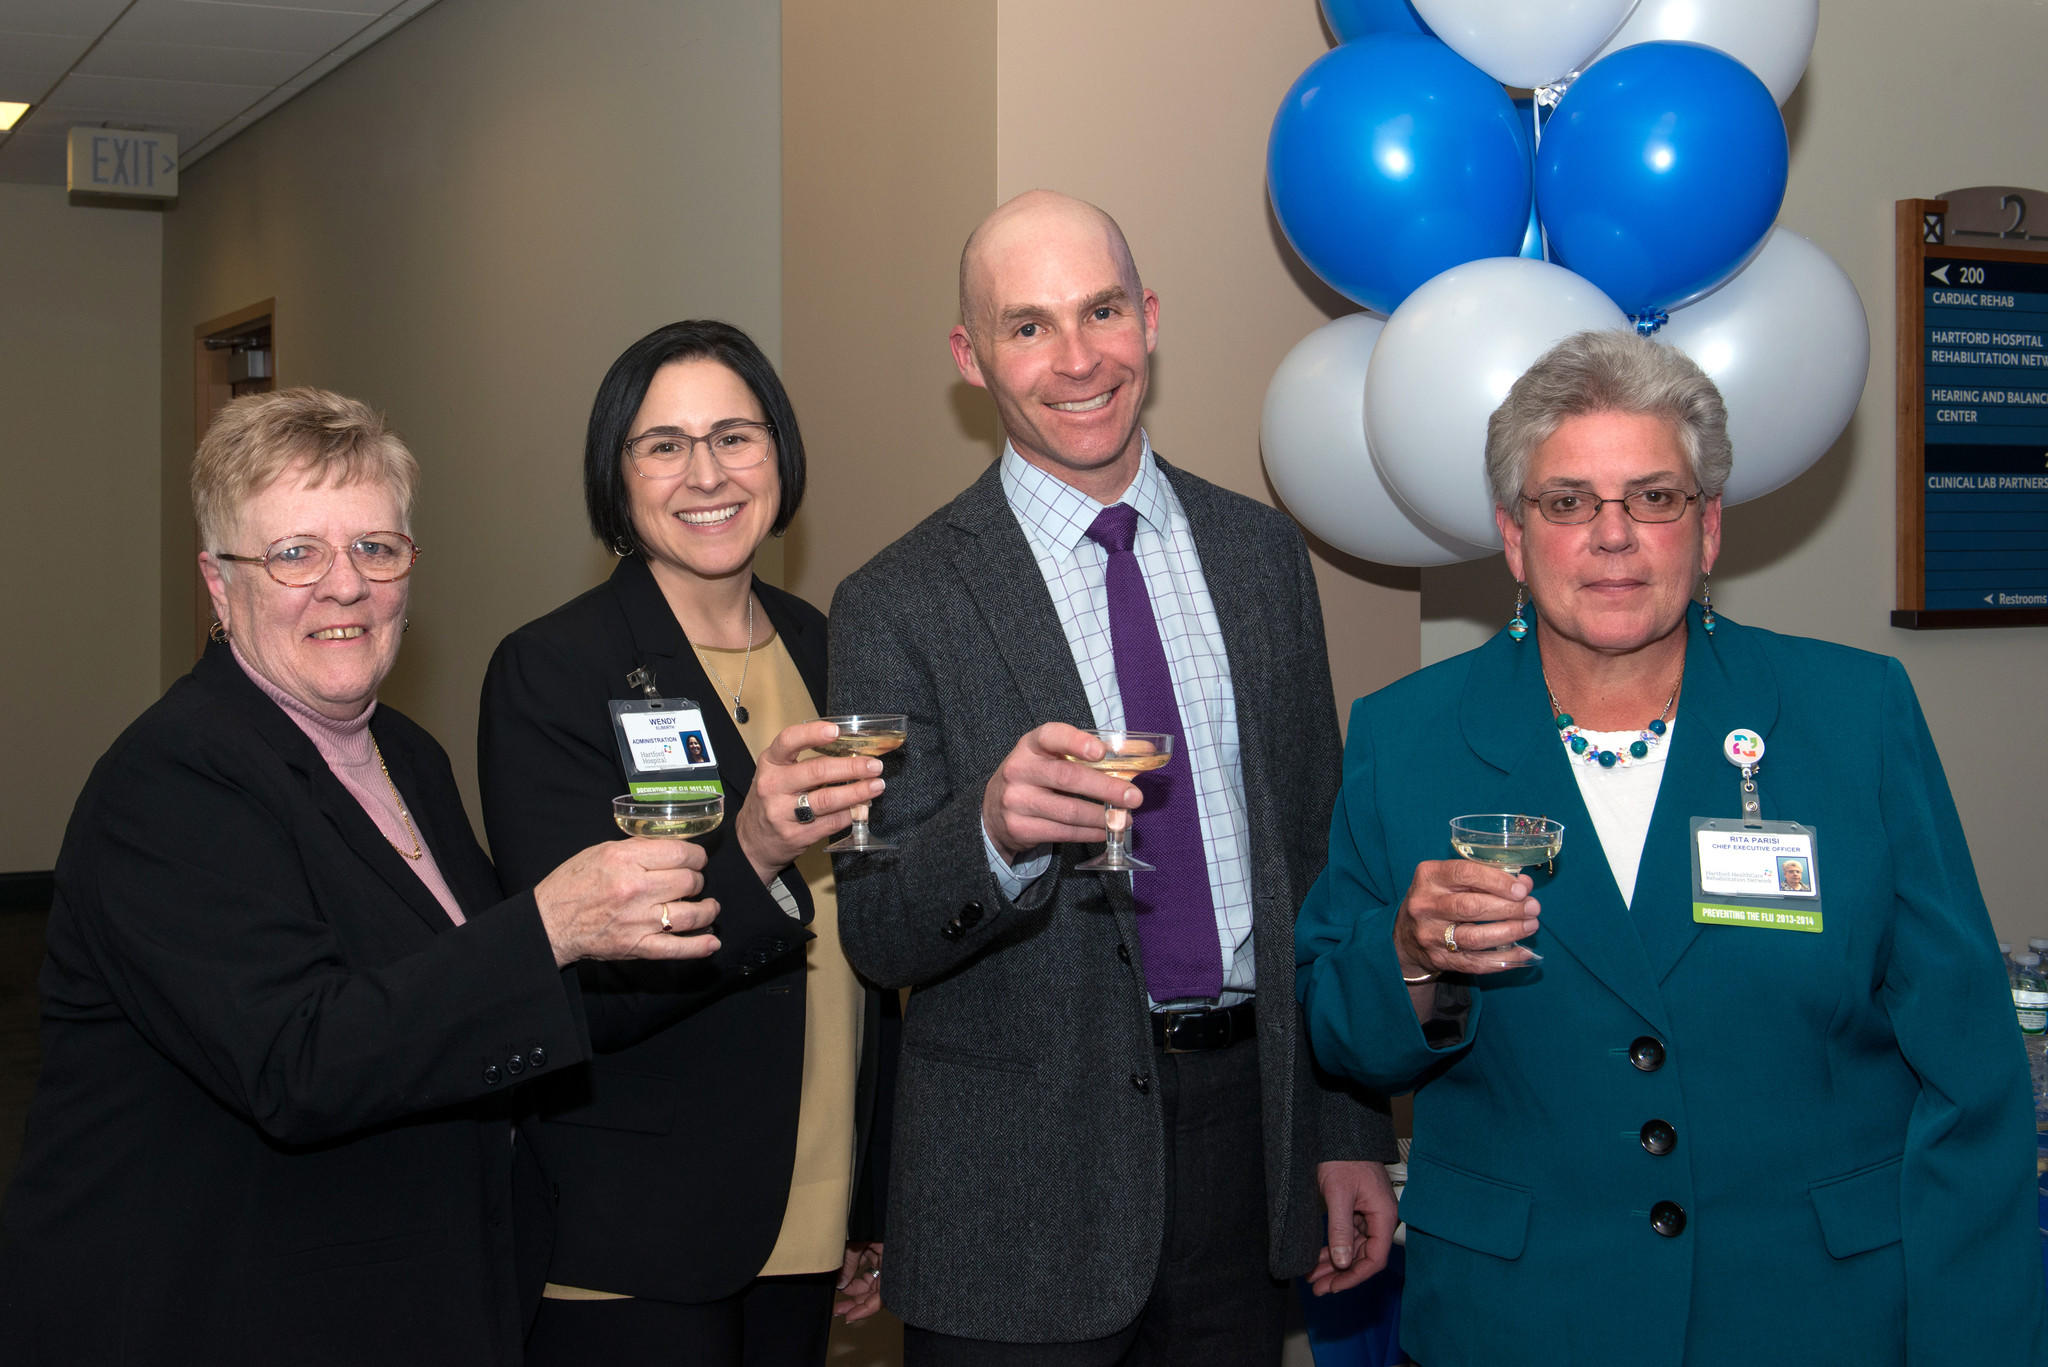 From left to right: Dizzy Clinic patient Karen Mooney; Wendy Elberth, vice president, administration at Hartford Hospital; Dr. Marc Eisen; Rita Parisi, president of Hartford Healthcare Rehabilitation Network & vice president of Hartford Healthcare.